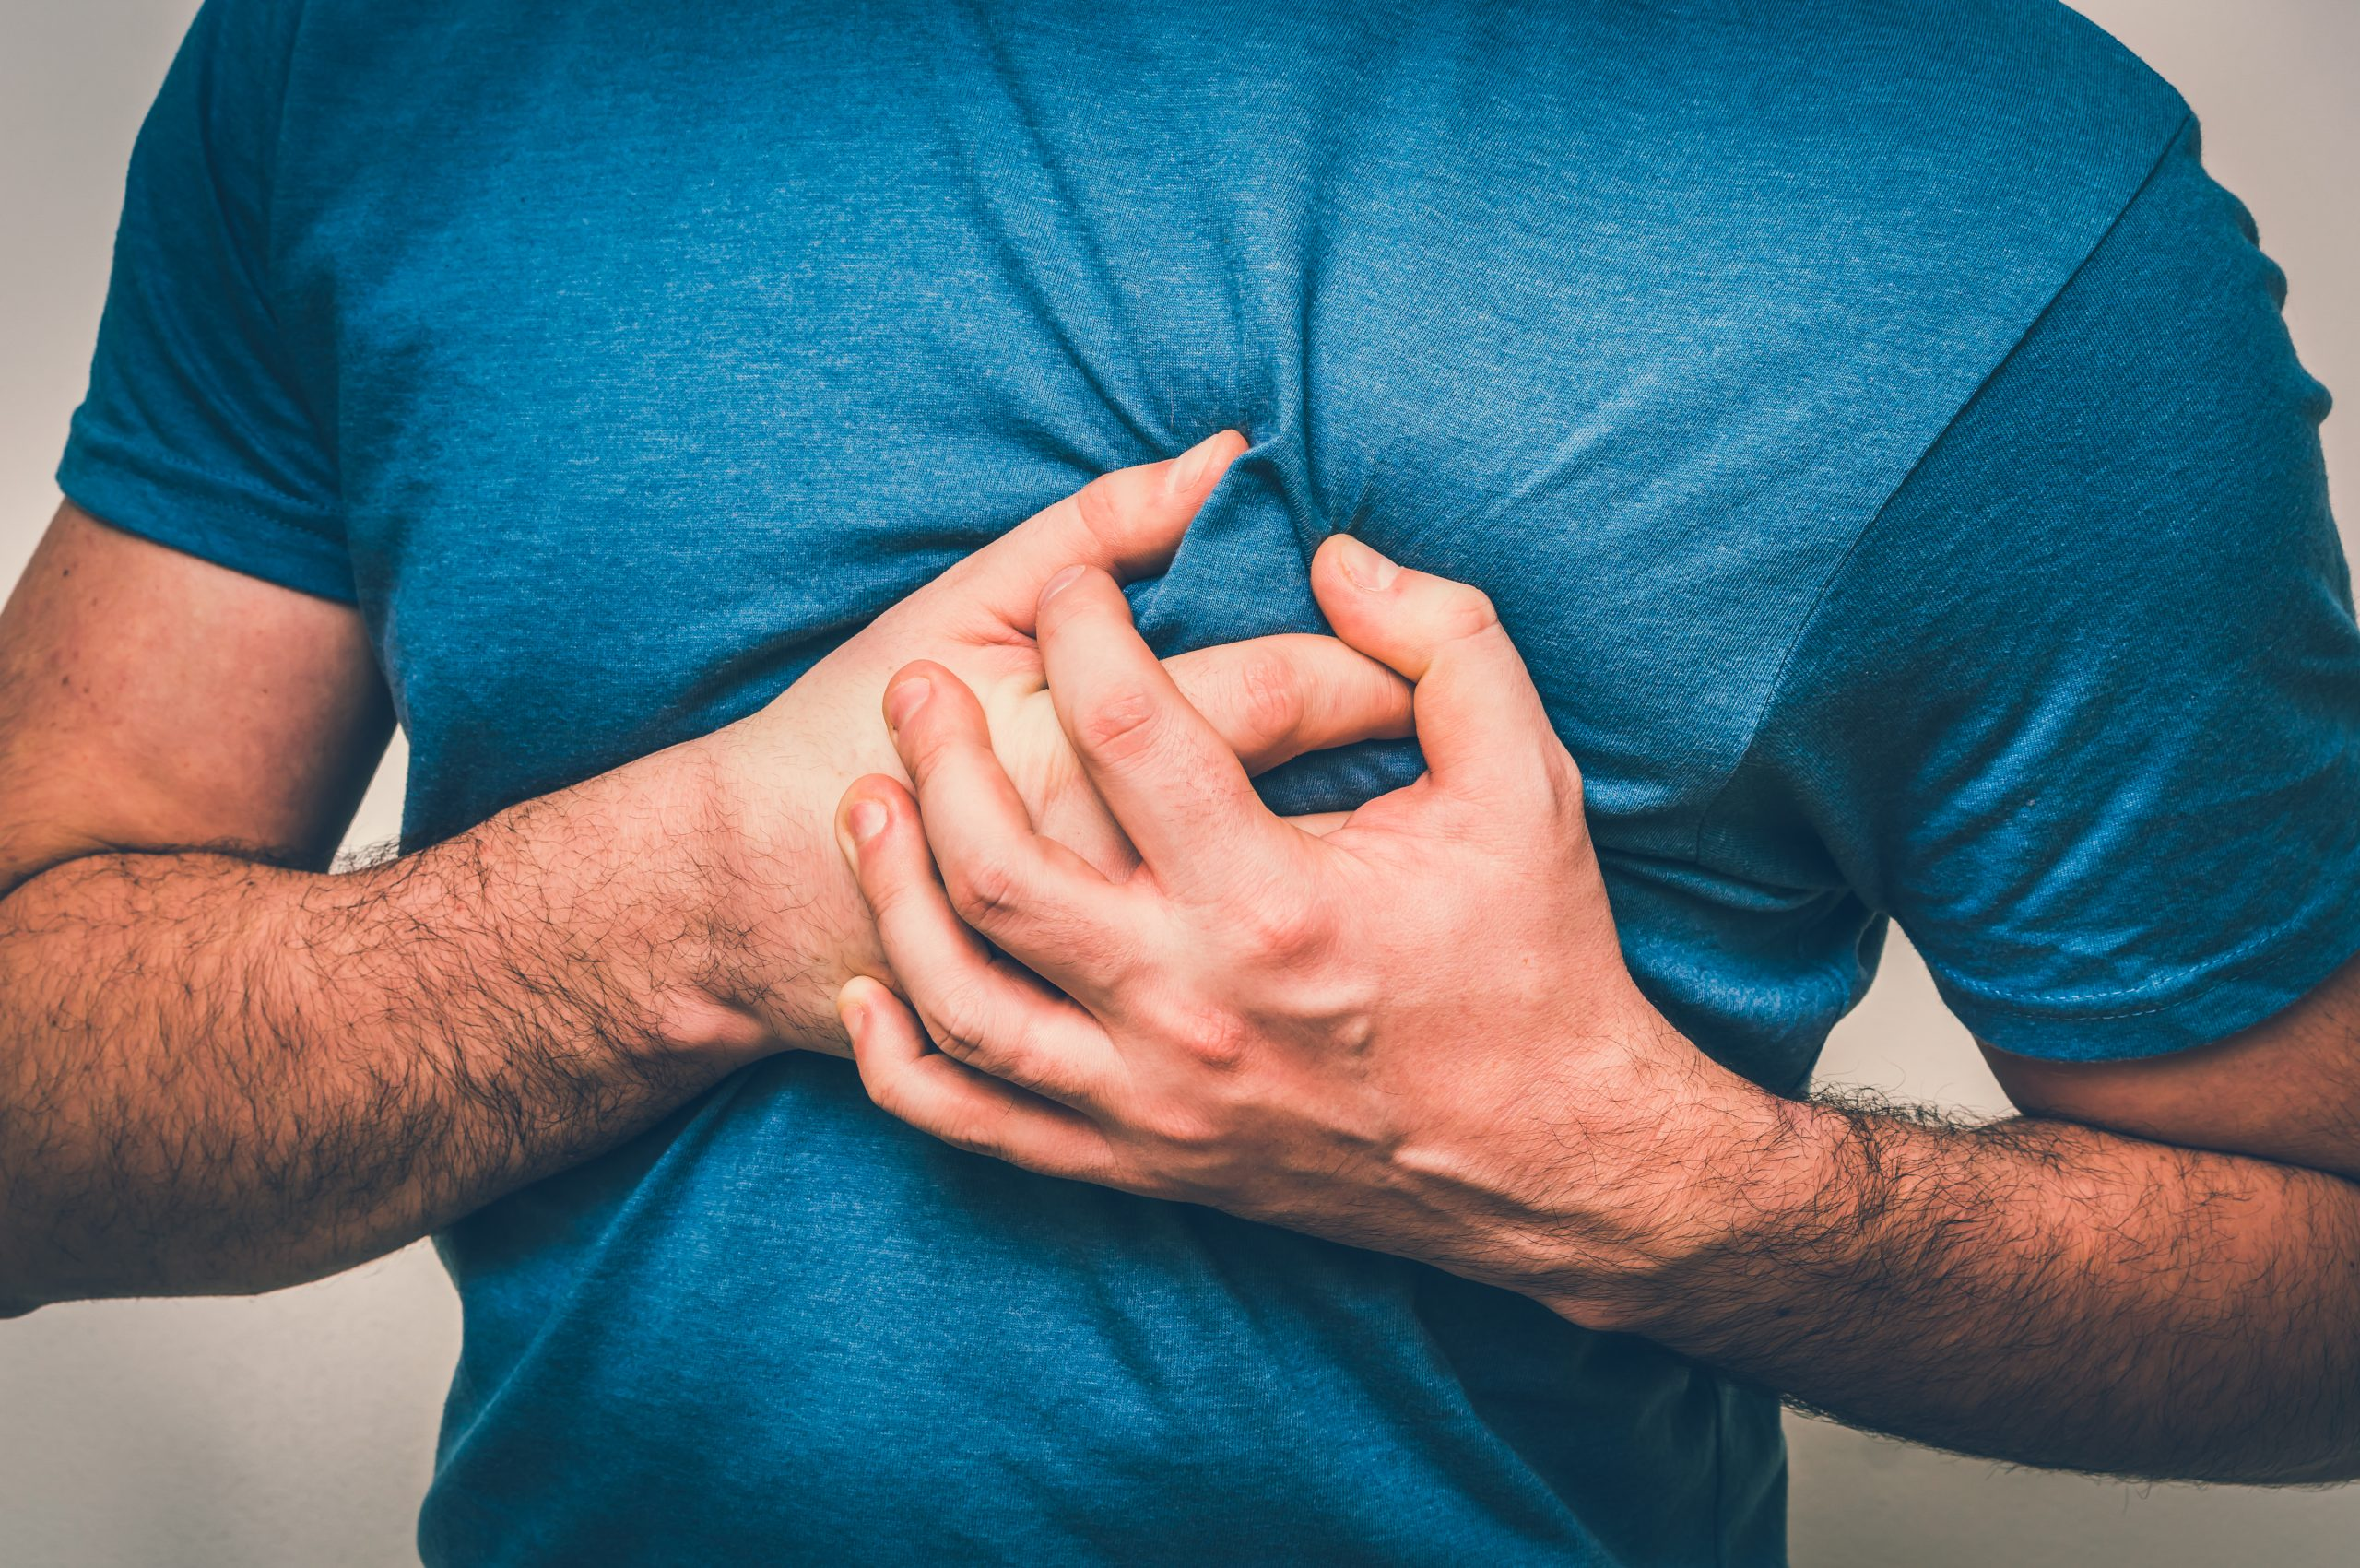 man holding chest due to pressure and pain related to heart attack